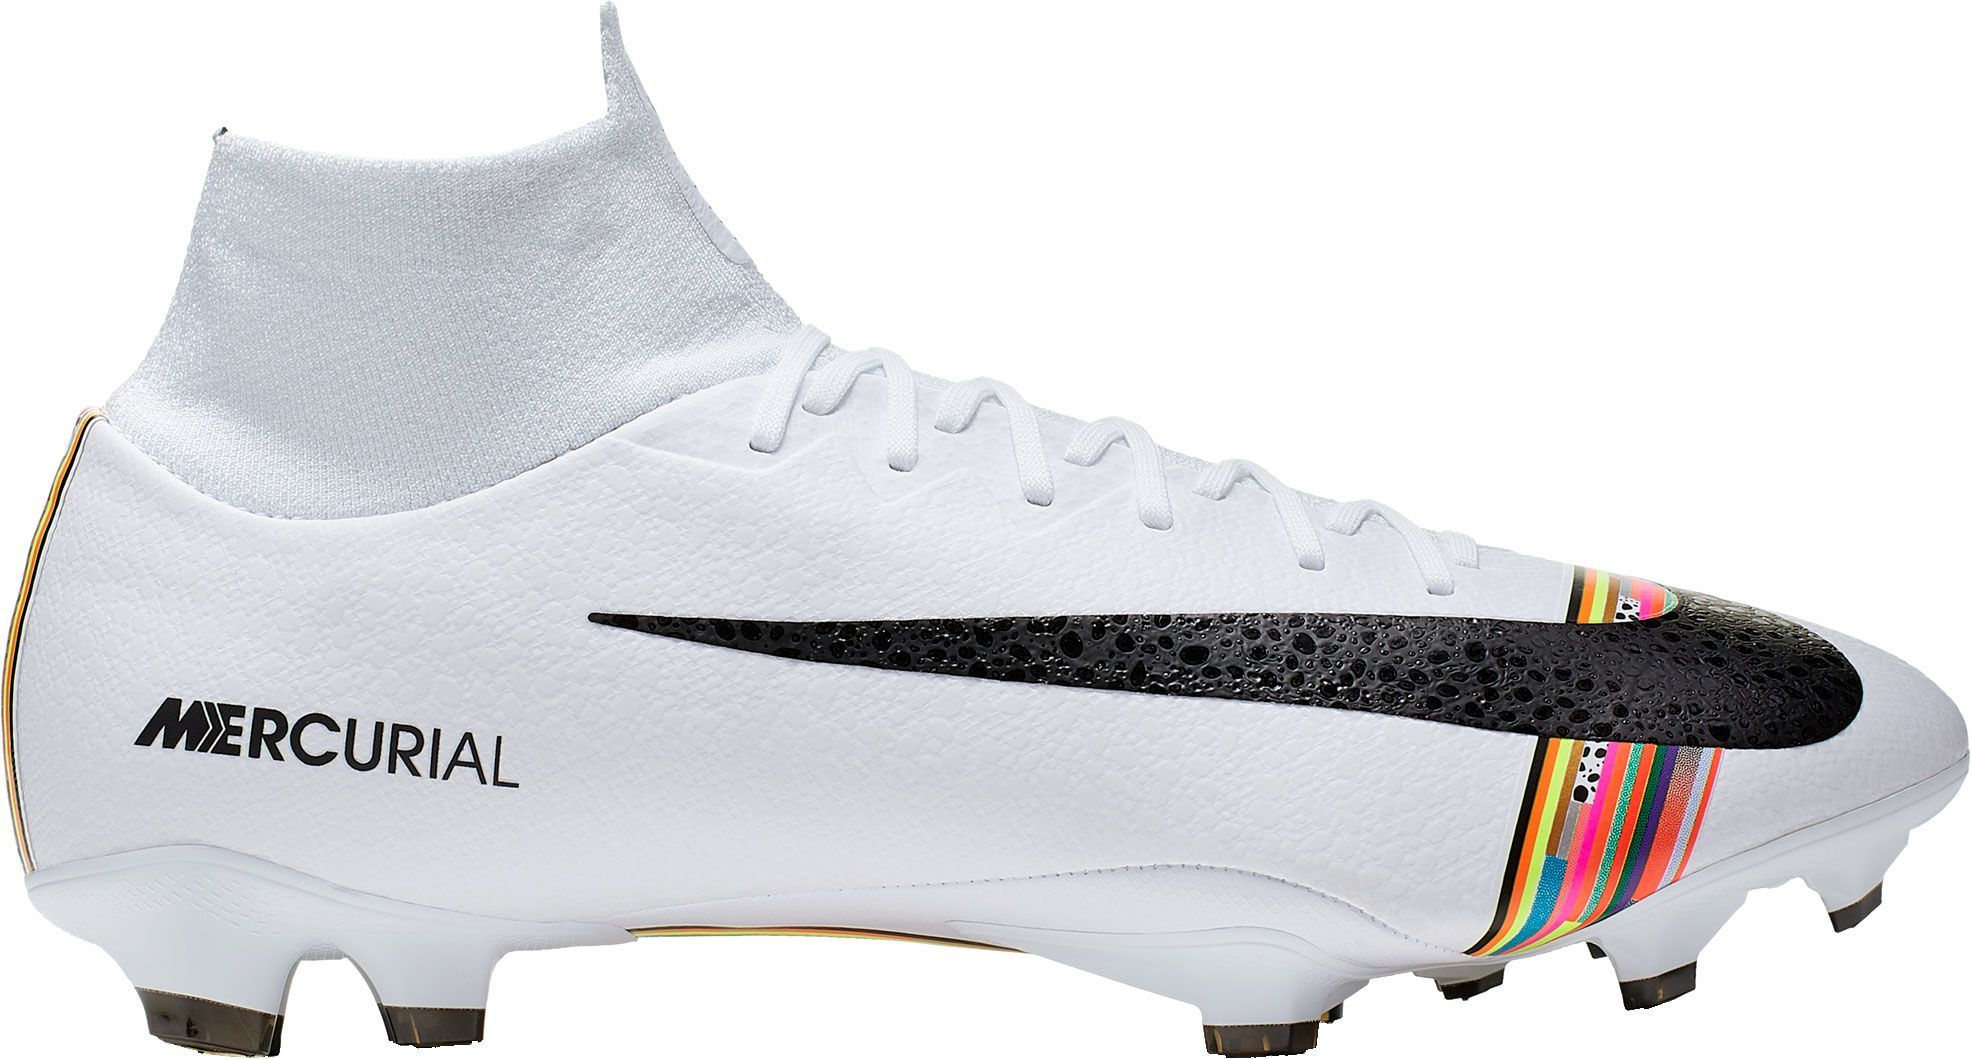 Nike Superfly 6 Pro Cr7 Fg Soccer Cleats Women S Girls Soccer Cleats Womens Soccer Cleats Soccer Shoes